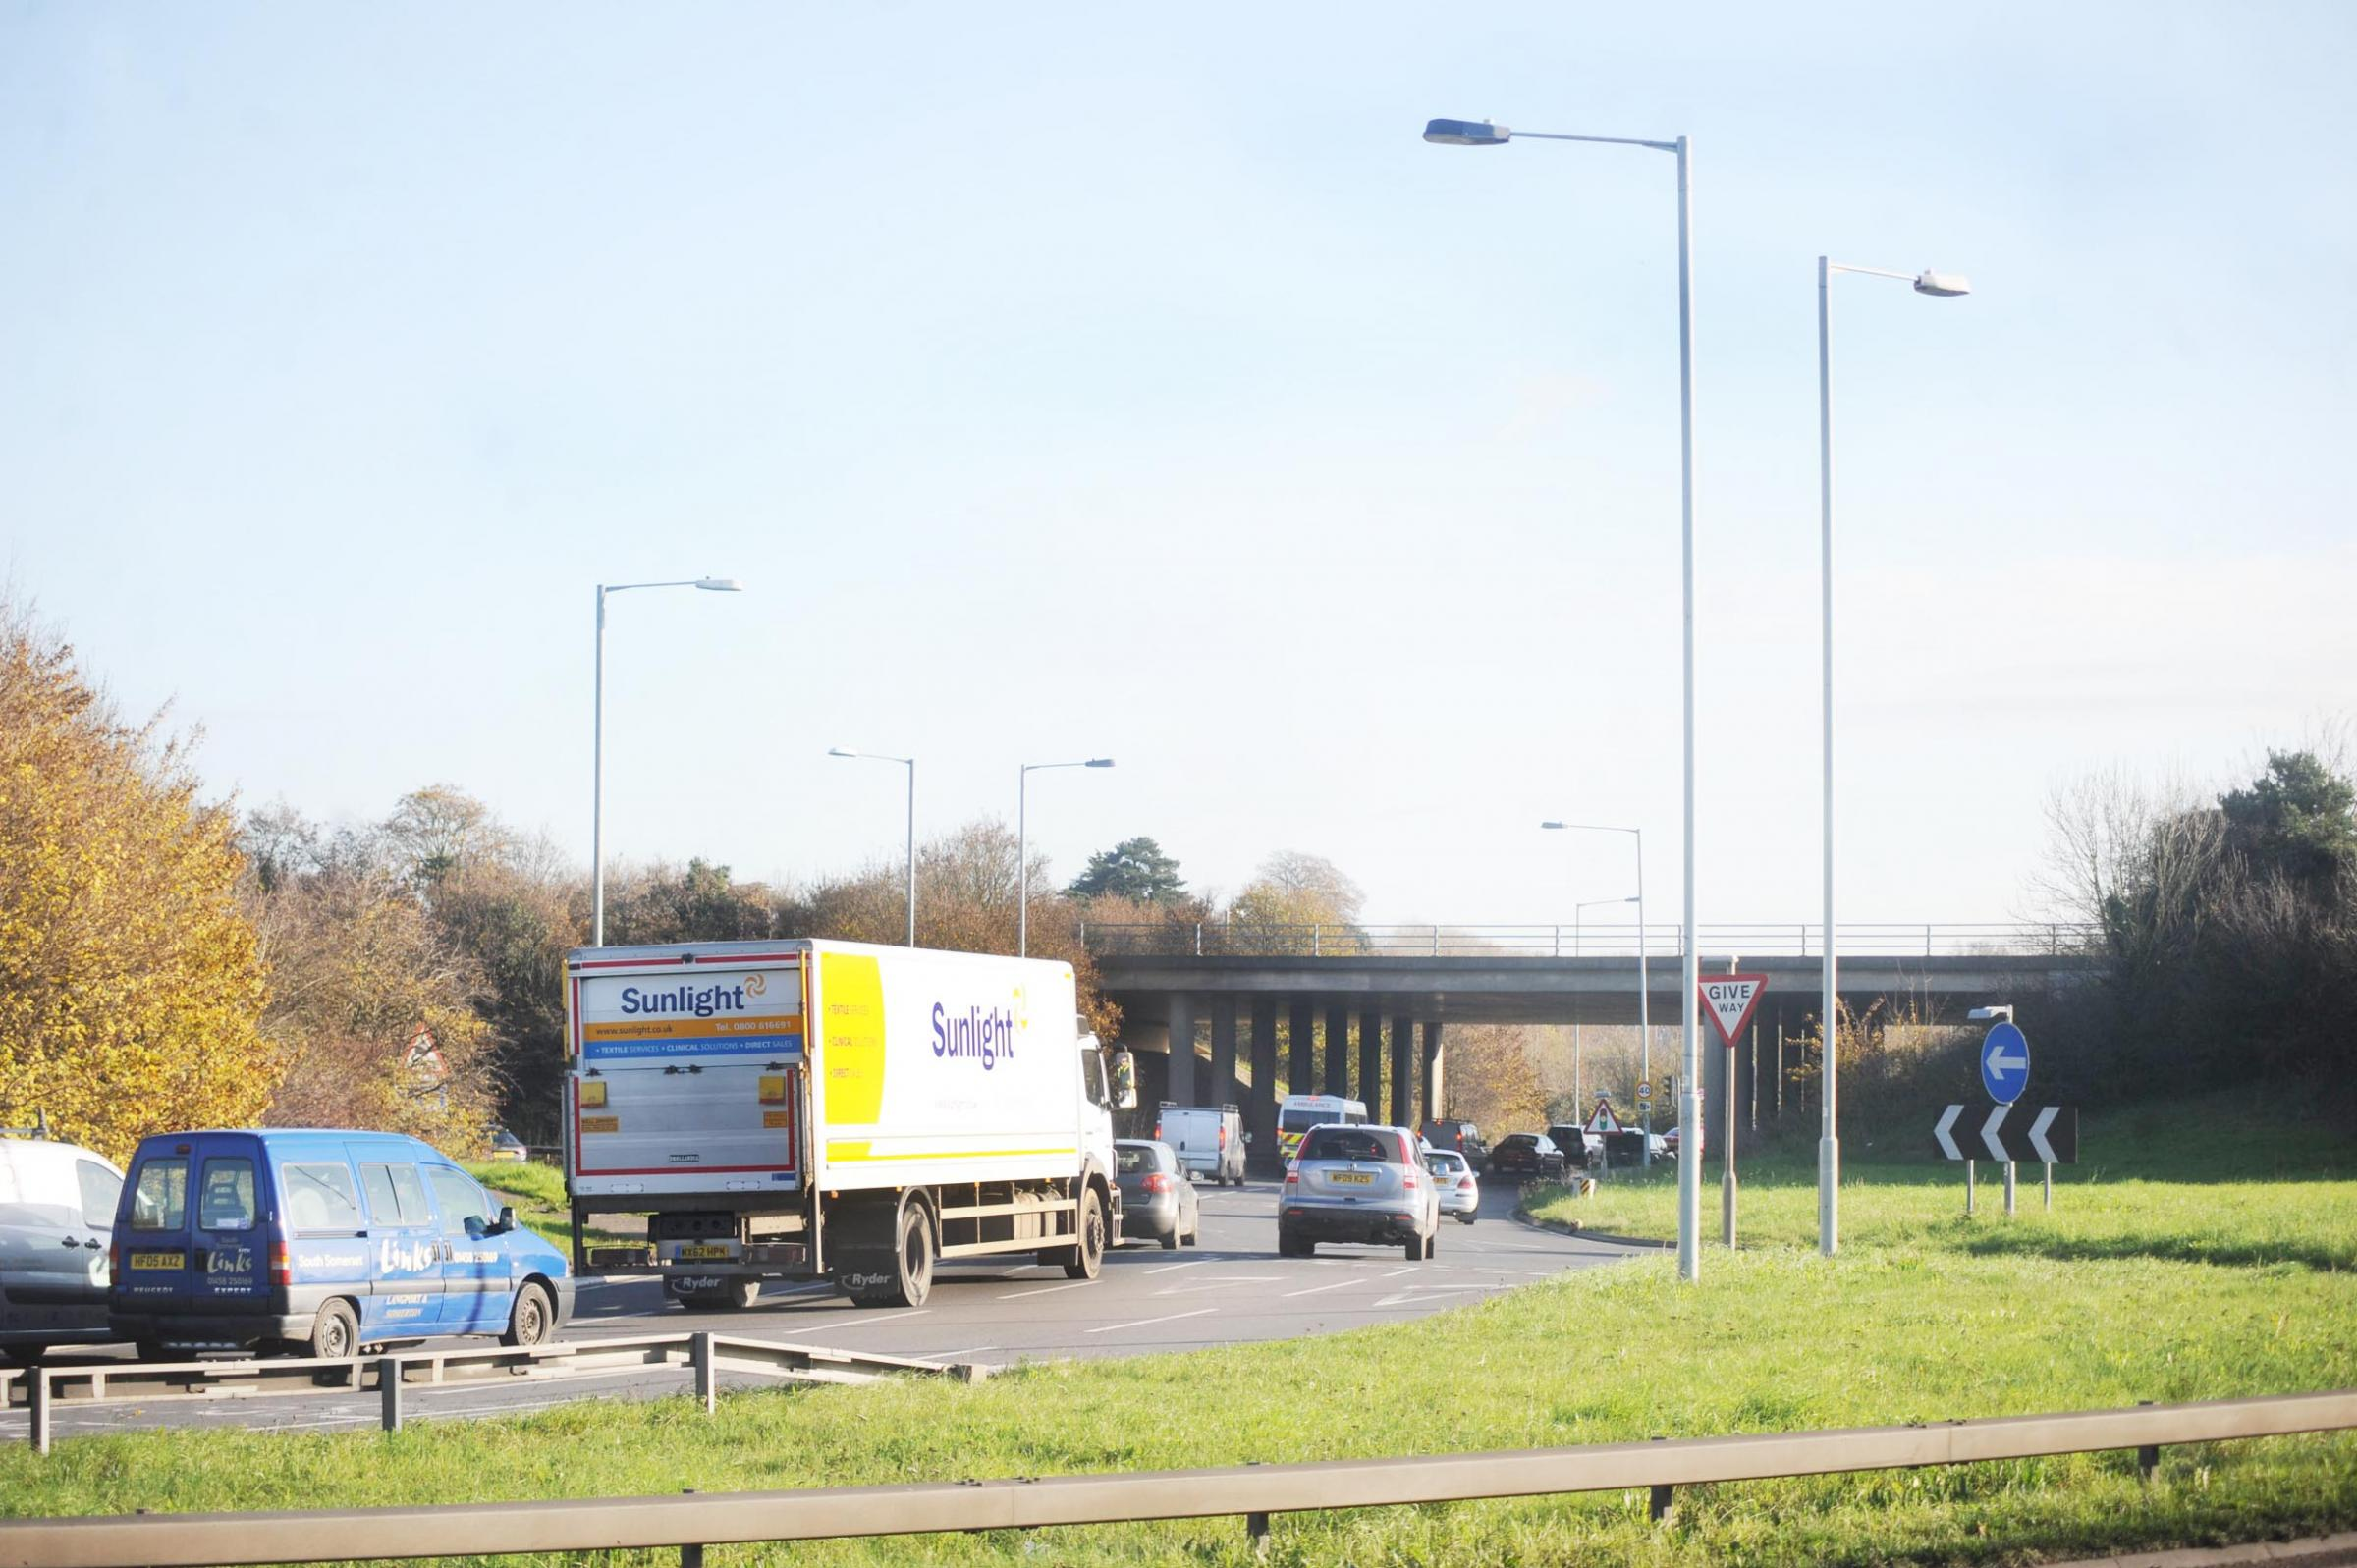 NEW ROUNDABOUT: As part of the works, a new roundabout will be installed at Junction 25